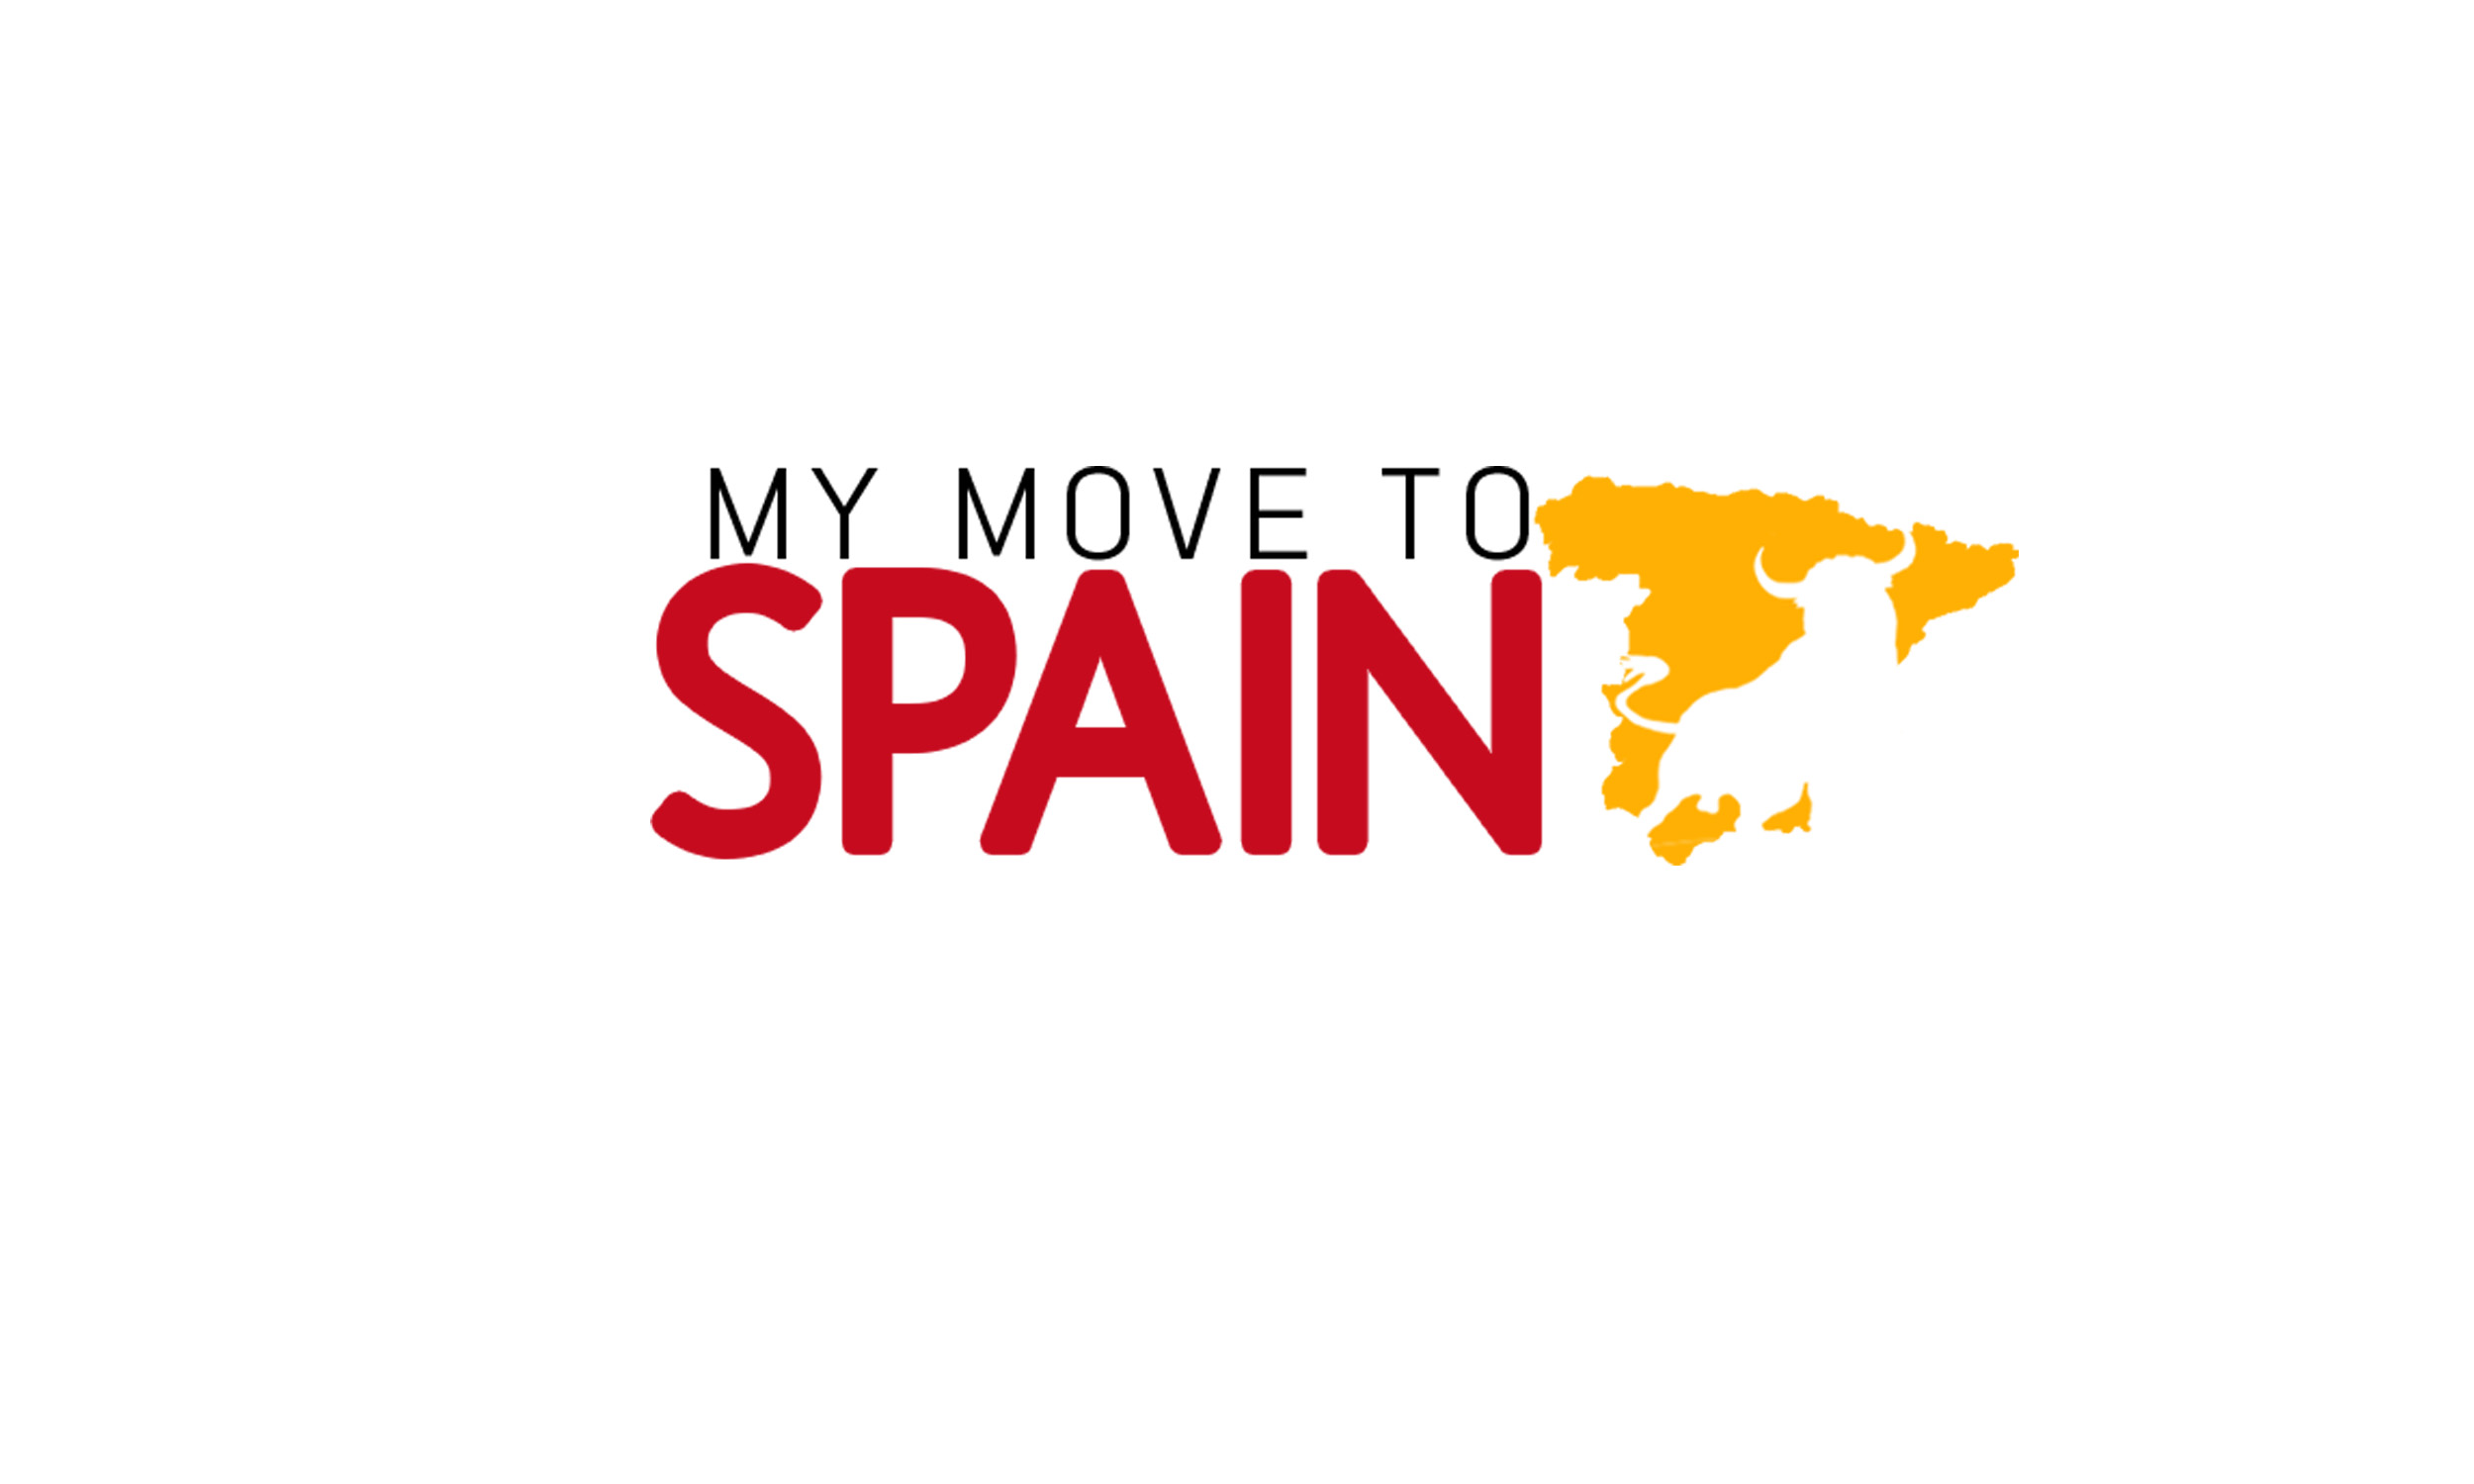 Moving to Spain and getting started